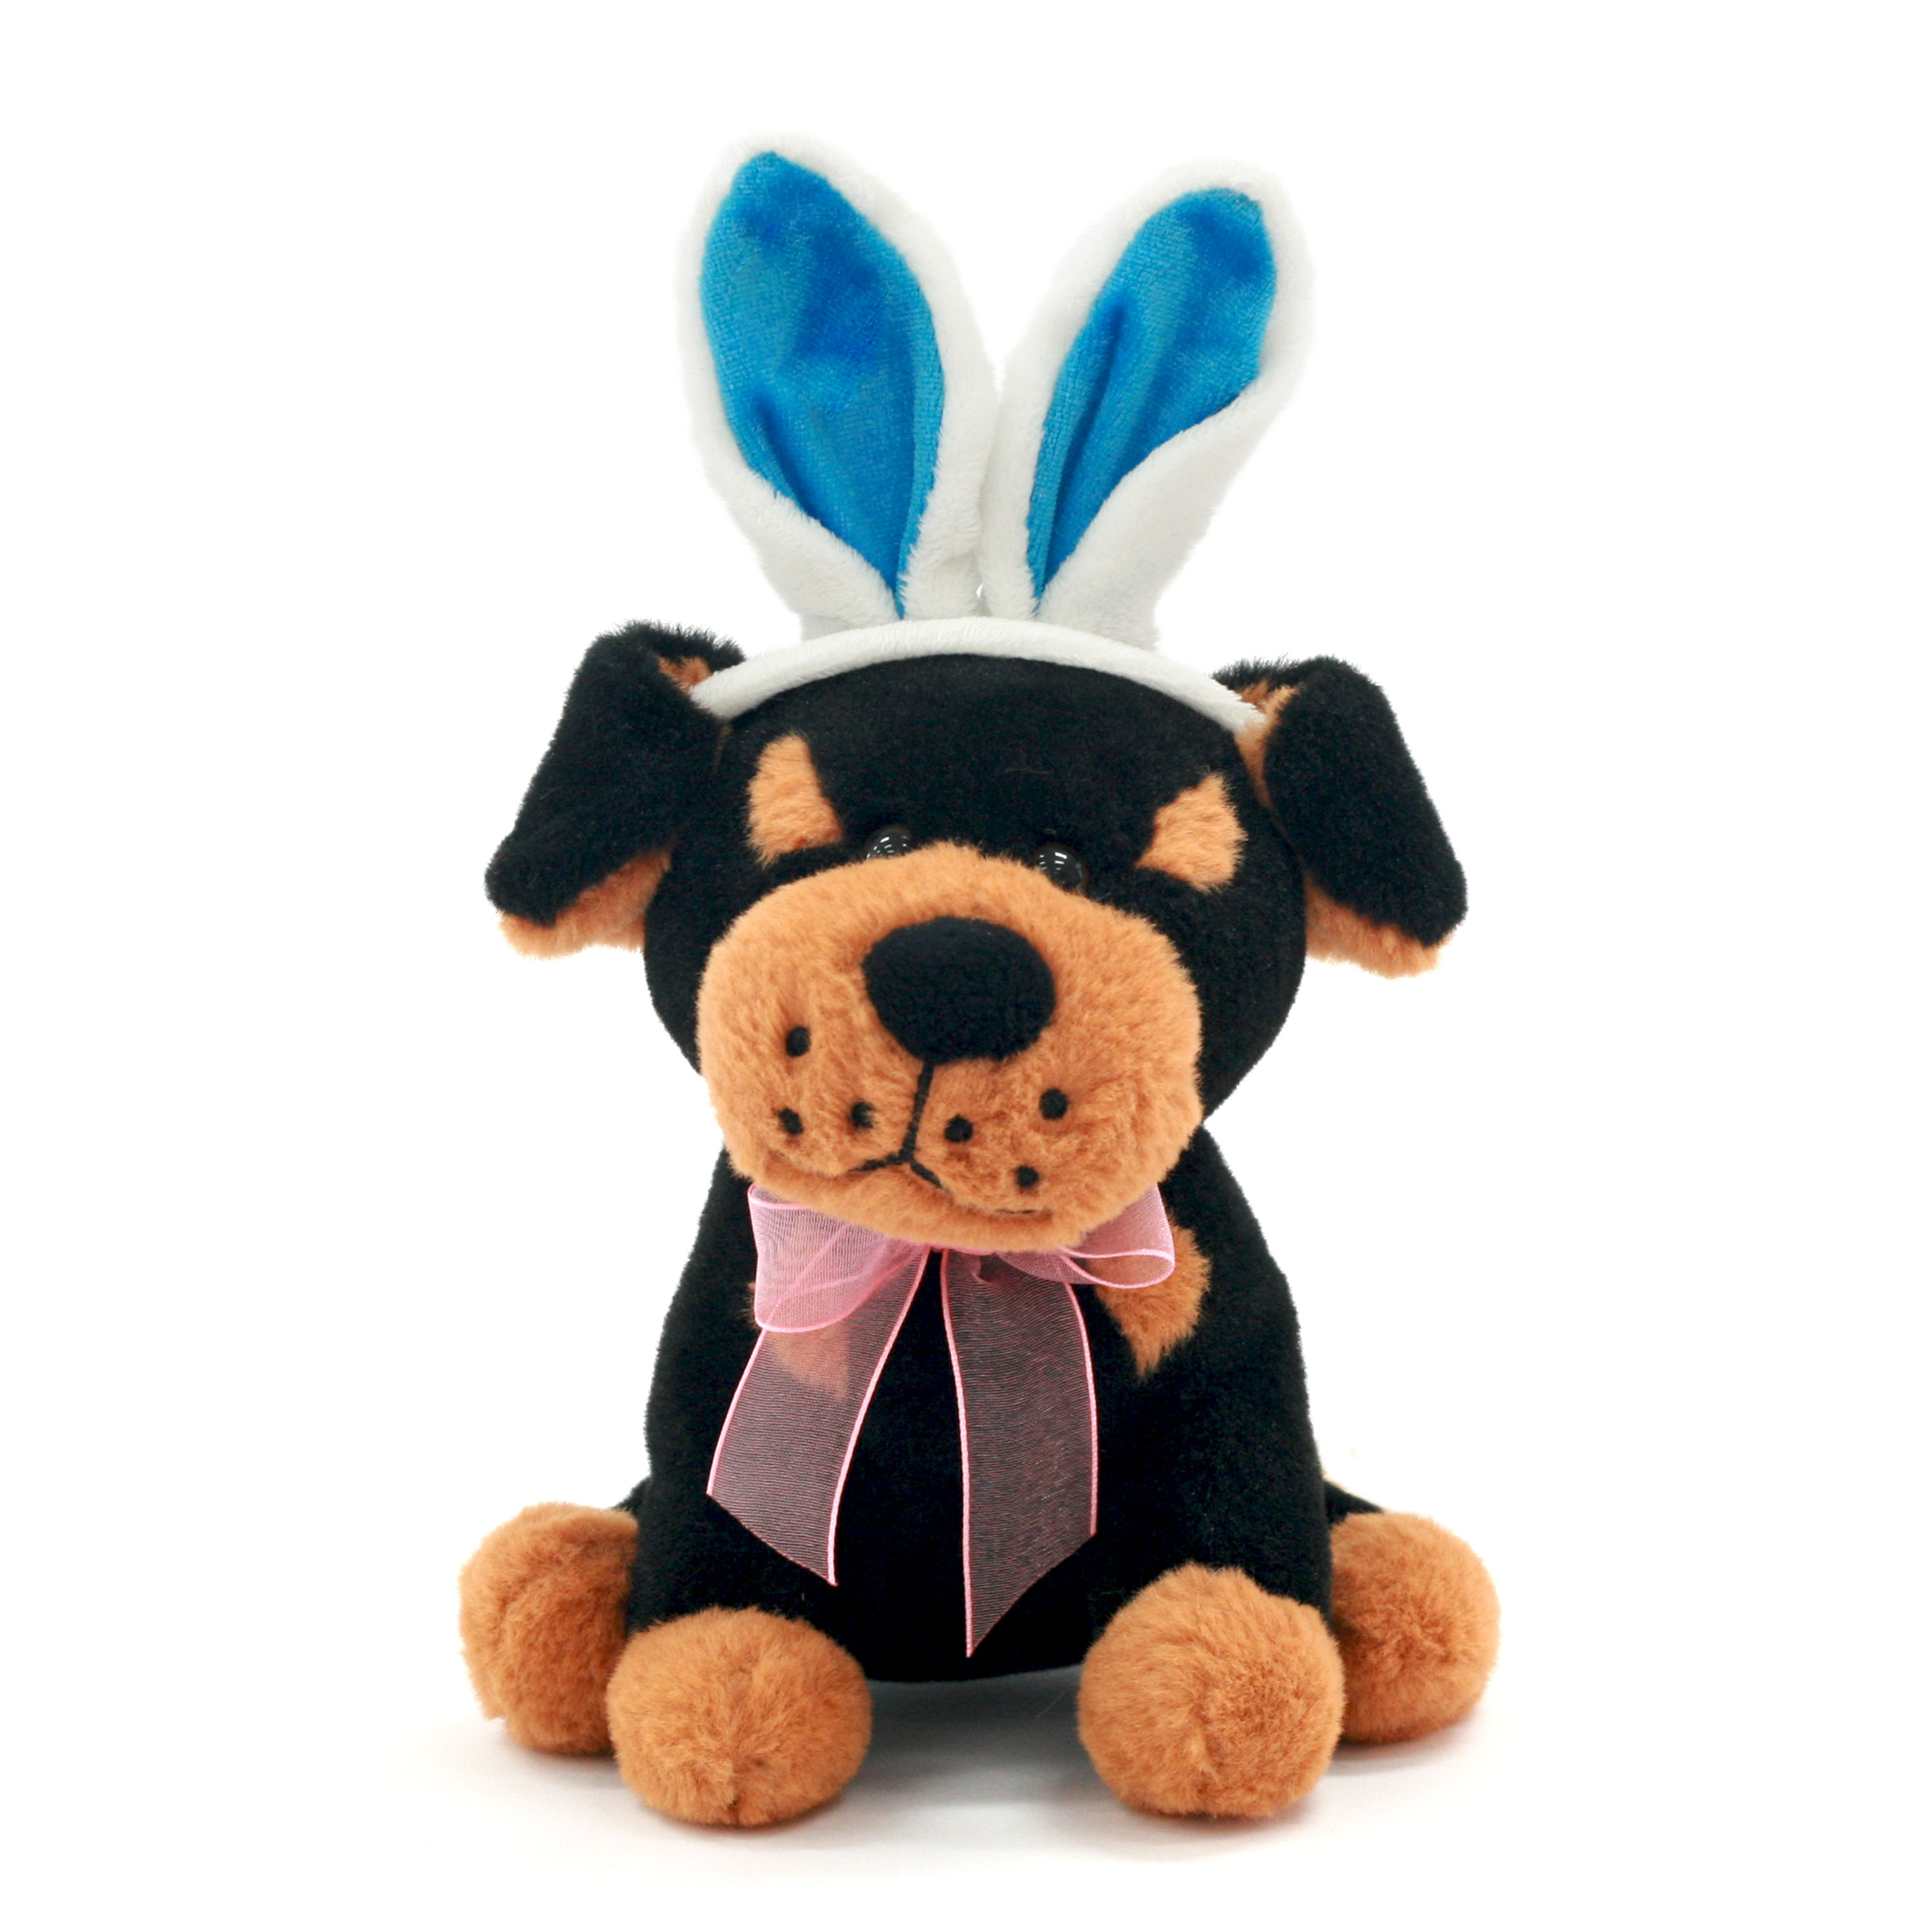 Easter 6 Inch Small Stuffed Animal Plush Toy Blue Ear Puppy